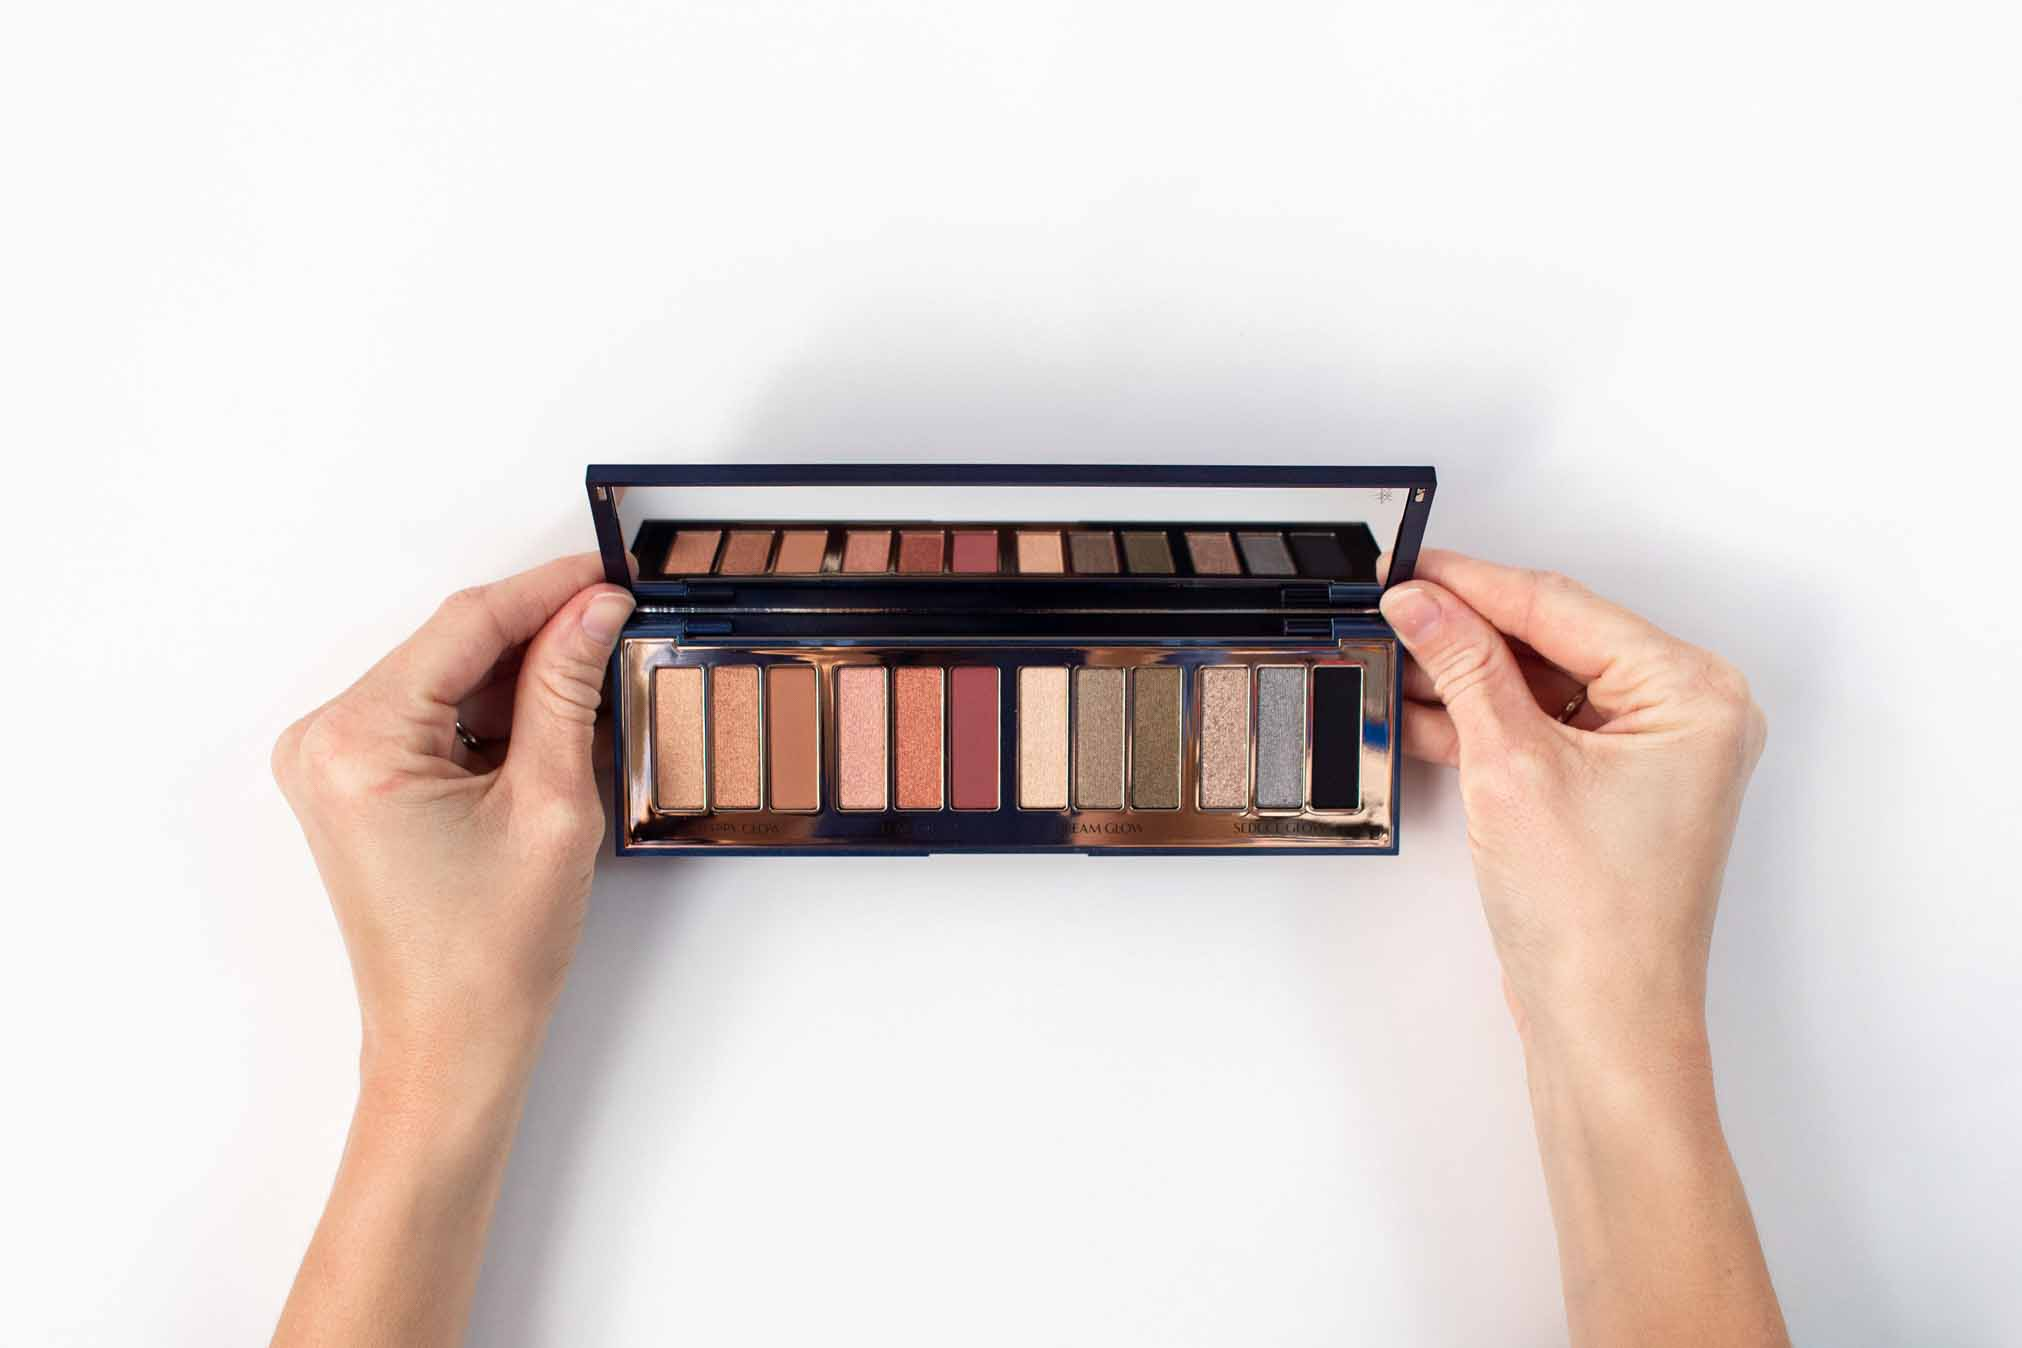 Charlotte Tilbury Eyeshadow Palette:  the range of colors is really perfect for any look I am going for. I also like that it's a 1, 2, 3 step process, with the base color starting at the left and then you just add on the other two.